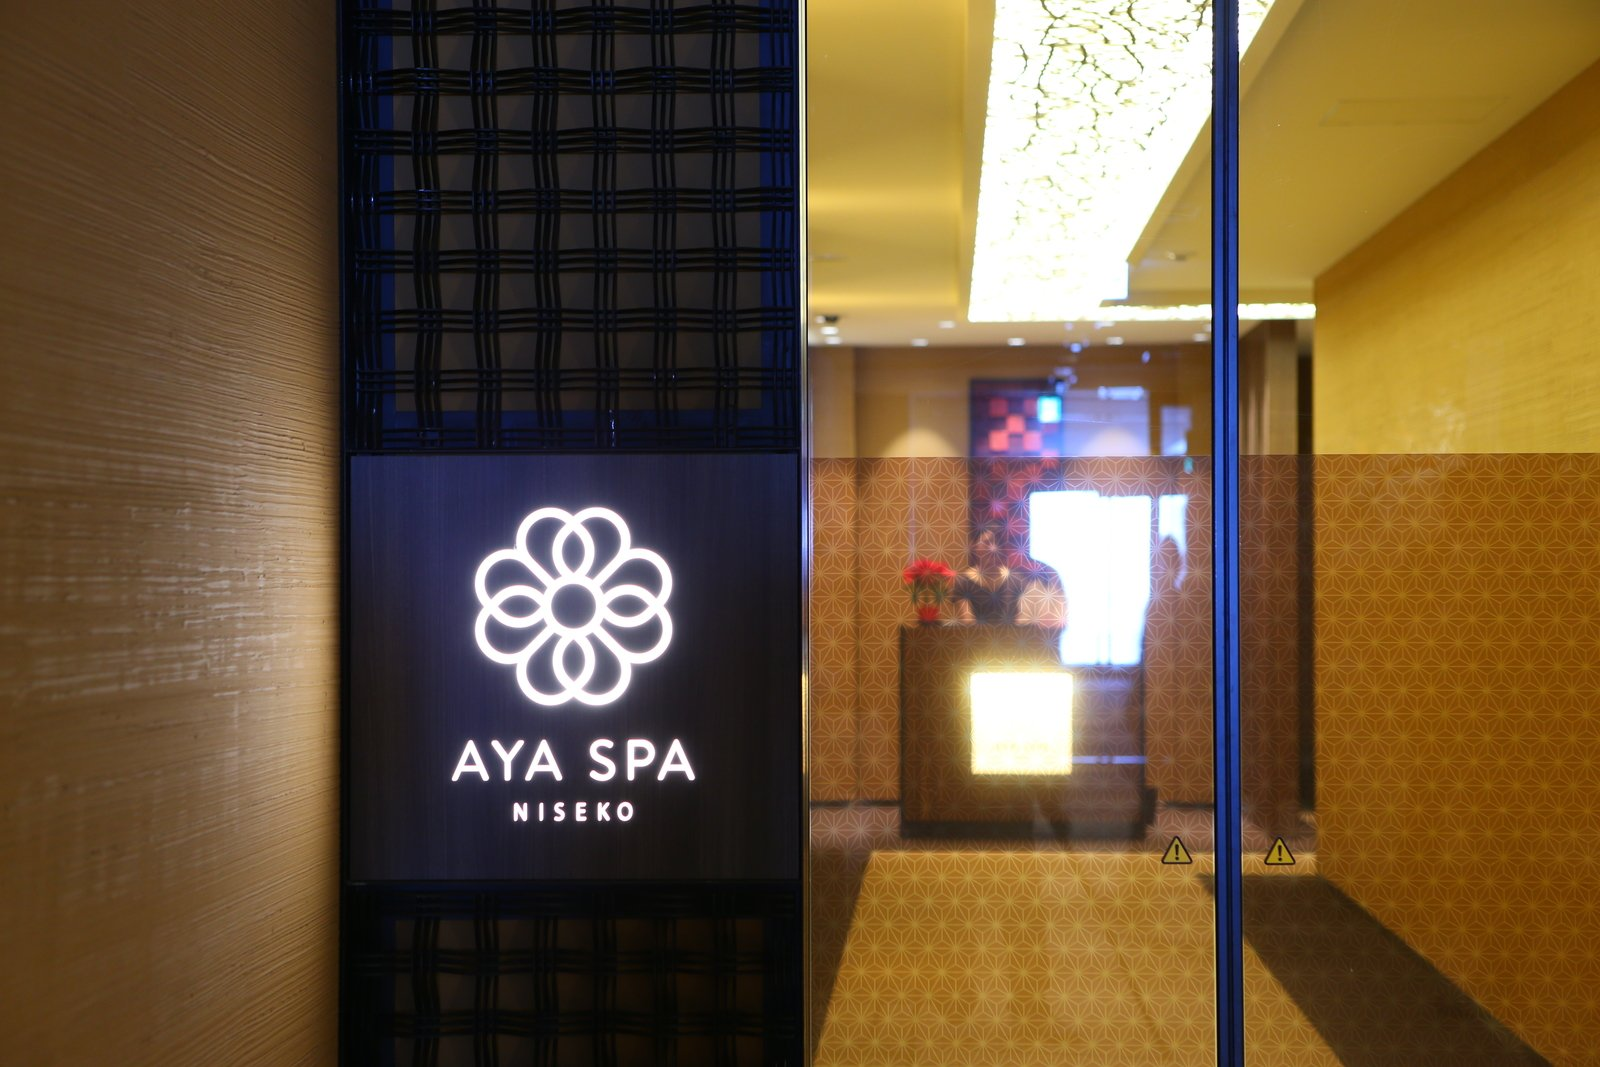 Aya spa 4 large